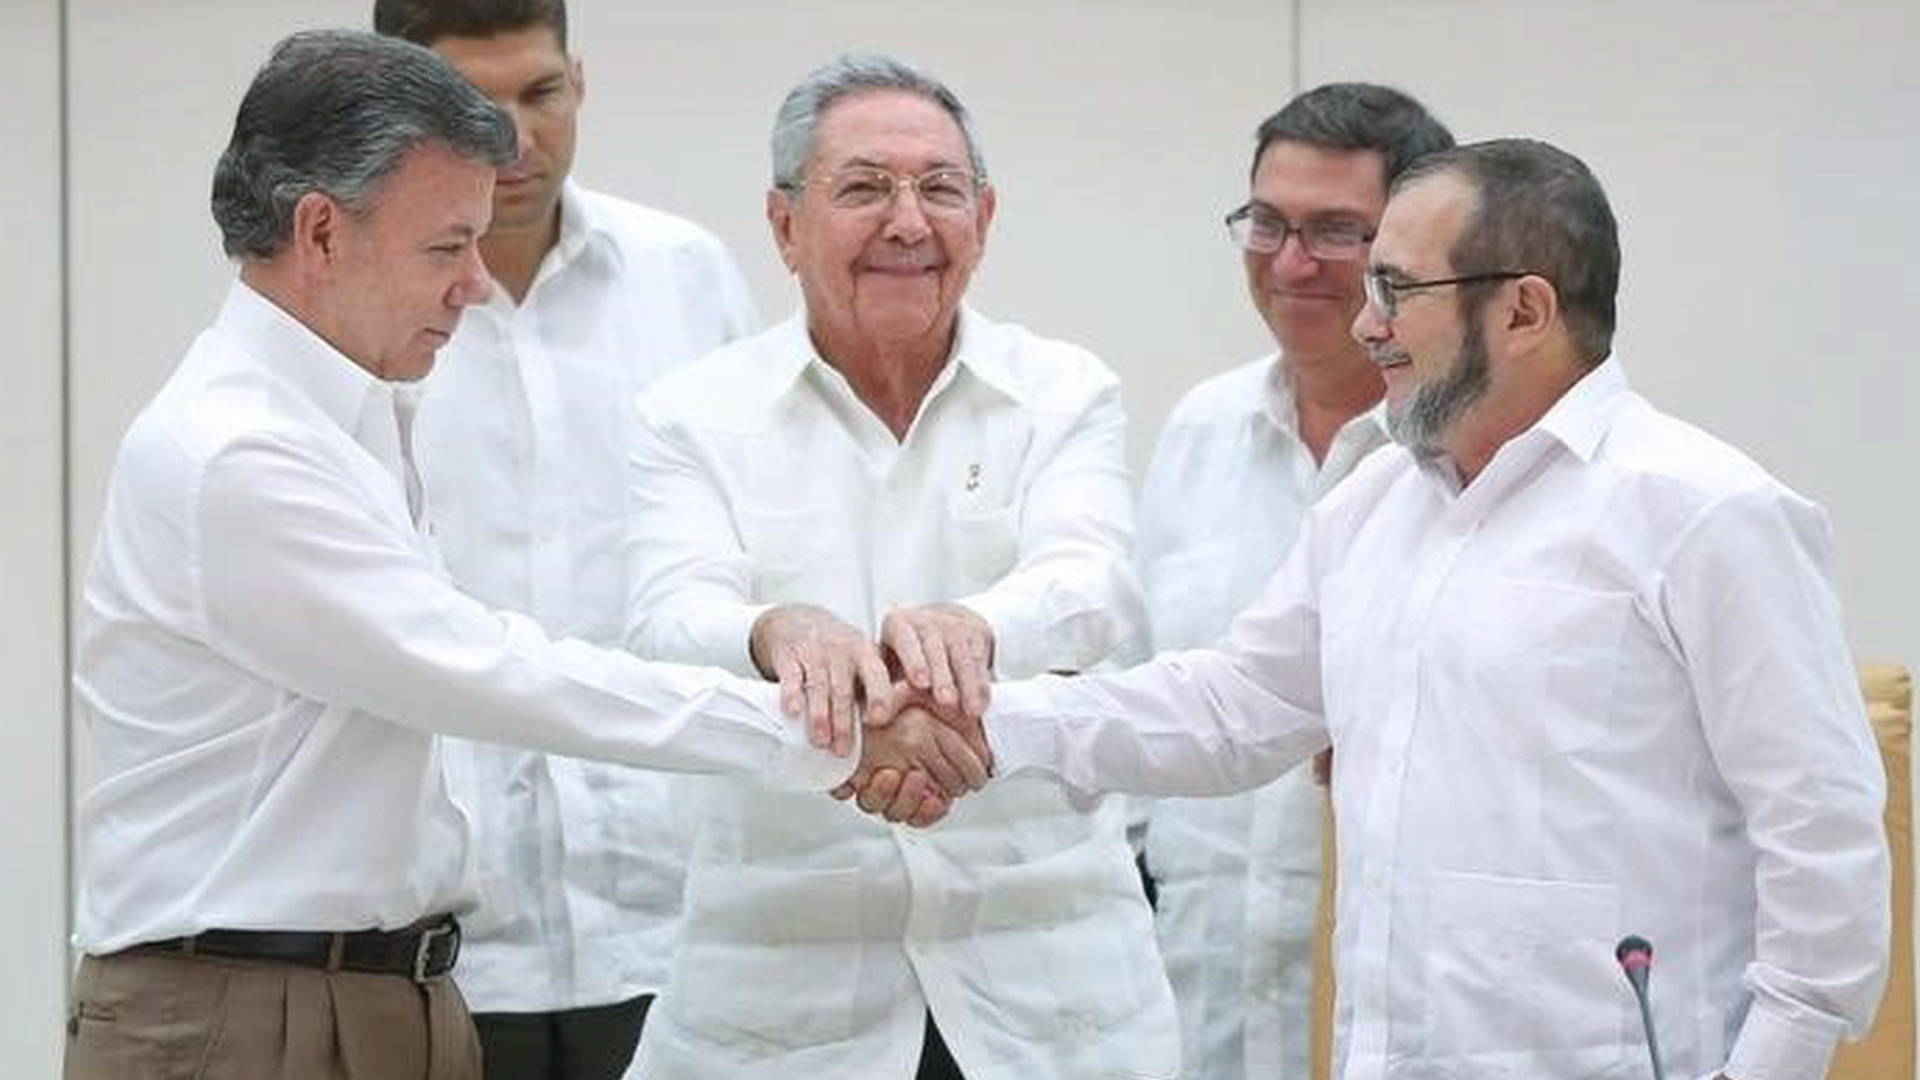 Colombia & FARC Rebels Sign New Peace Deal